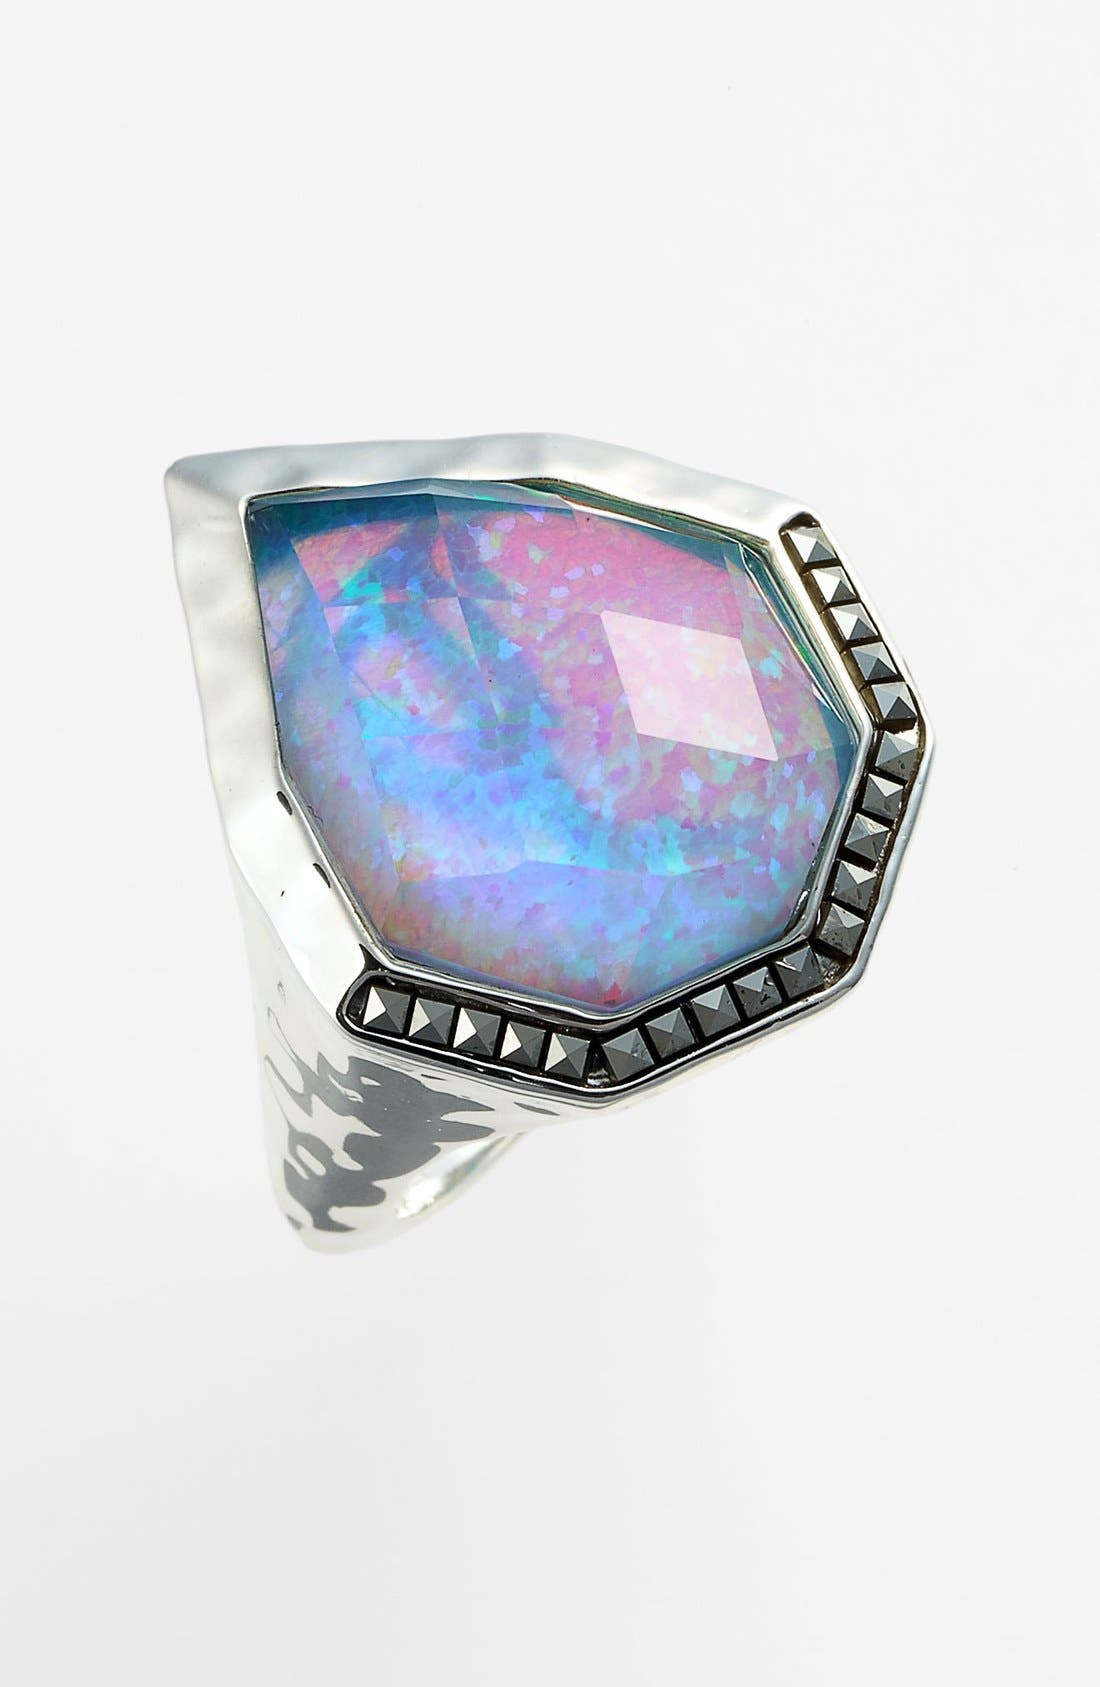 Main Image - Judith Jack 'Waterfall' Cocktail Ring